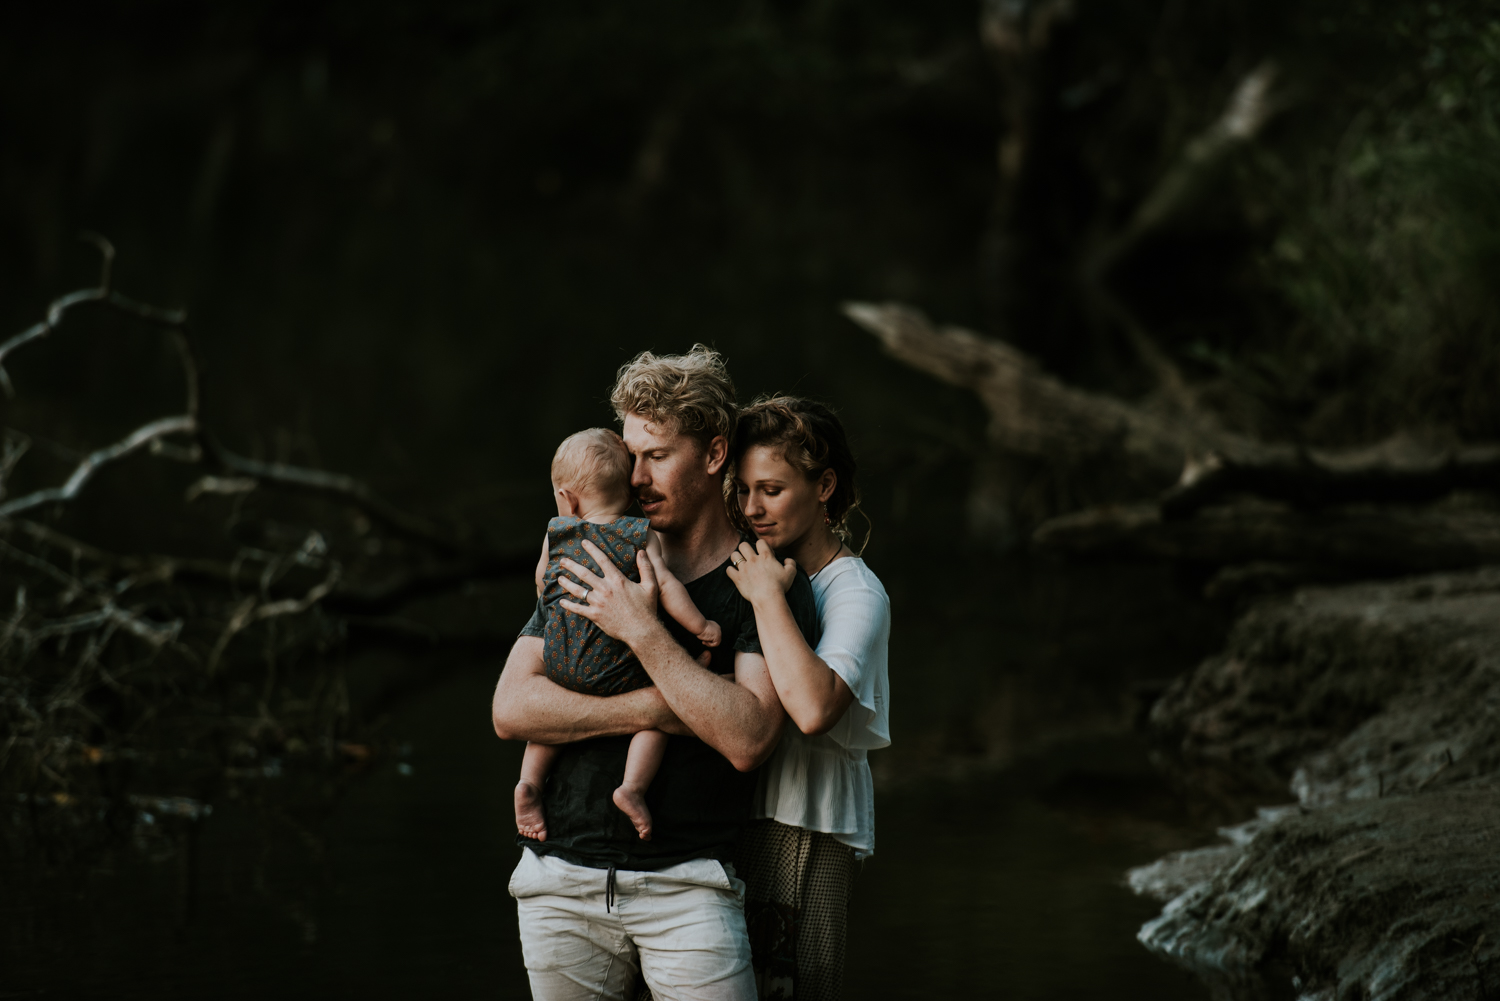 Brisbane Family Photographer | Newborn-Lifestyle Photography-30.jpg